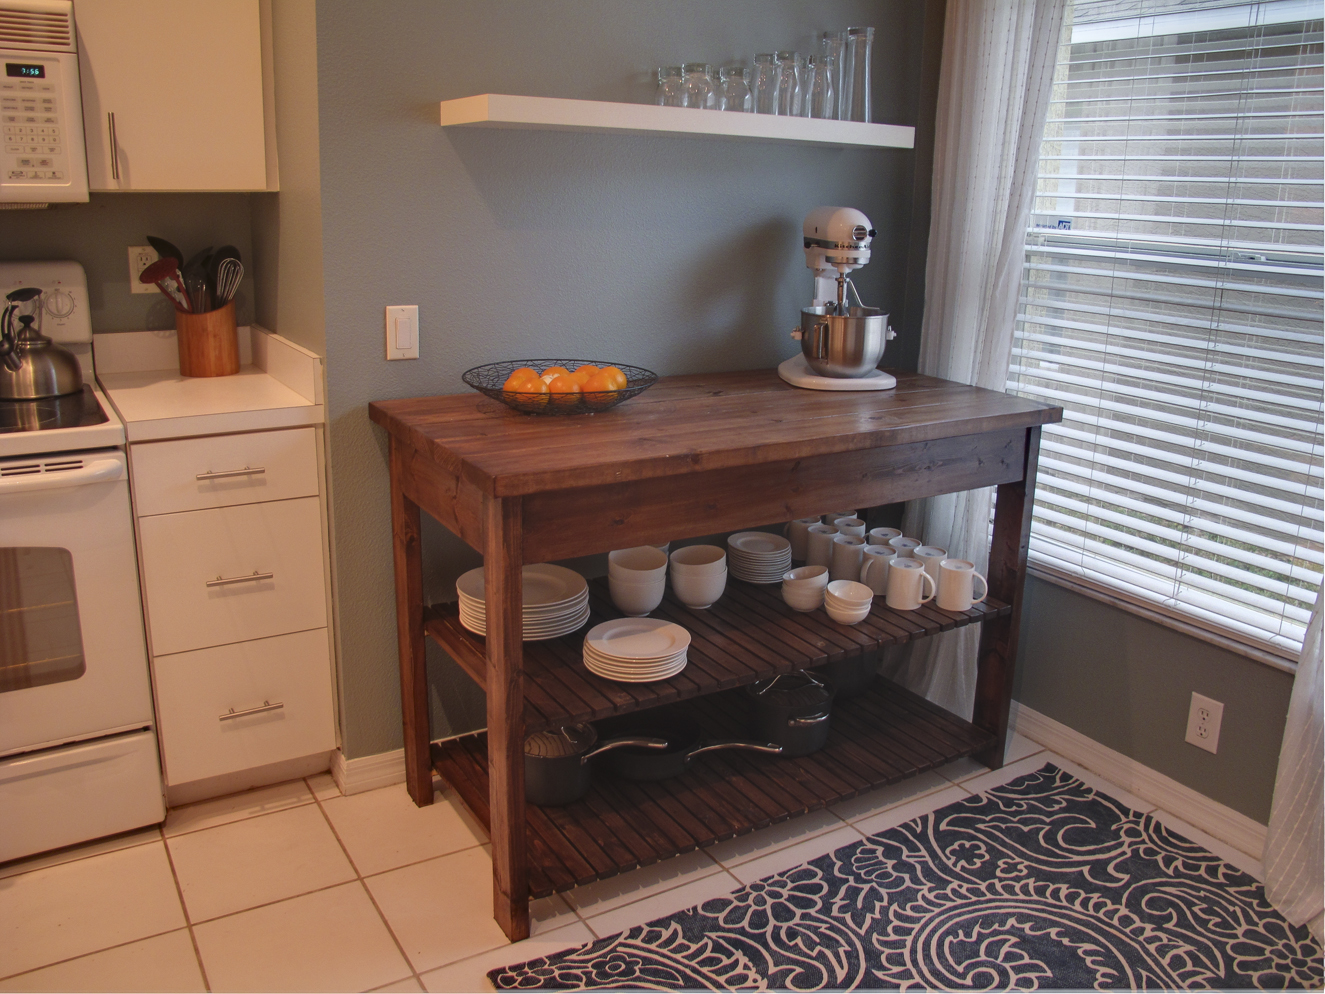 Kitchen Island Plans domestic jenny: diy kitchen island plans